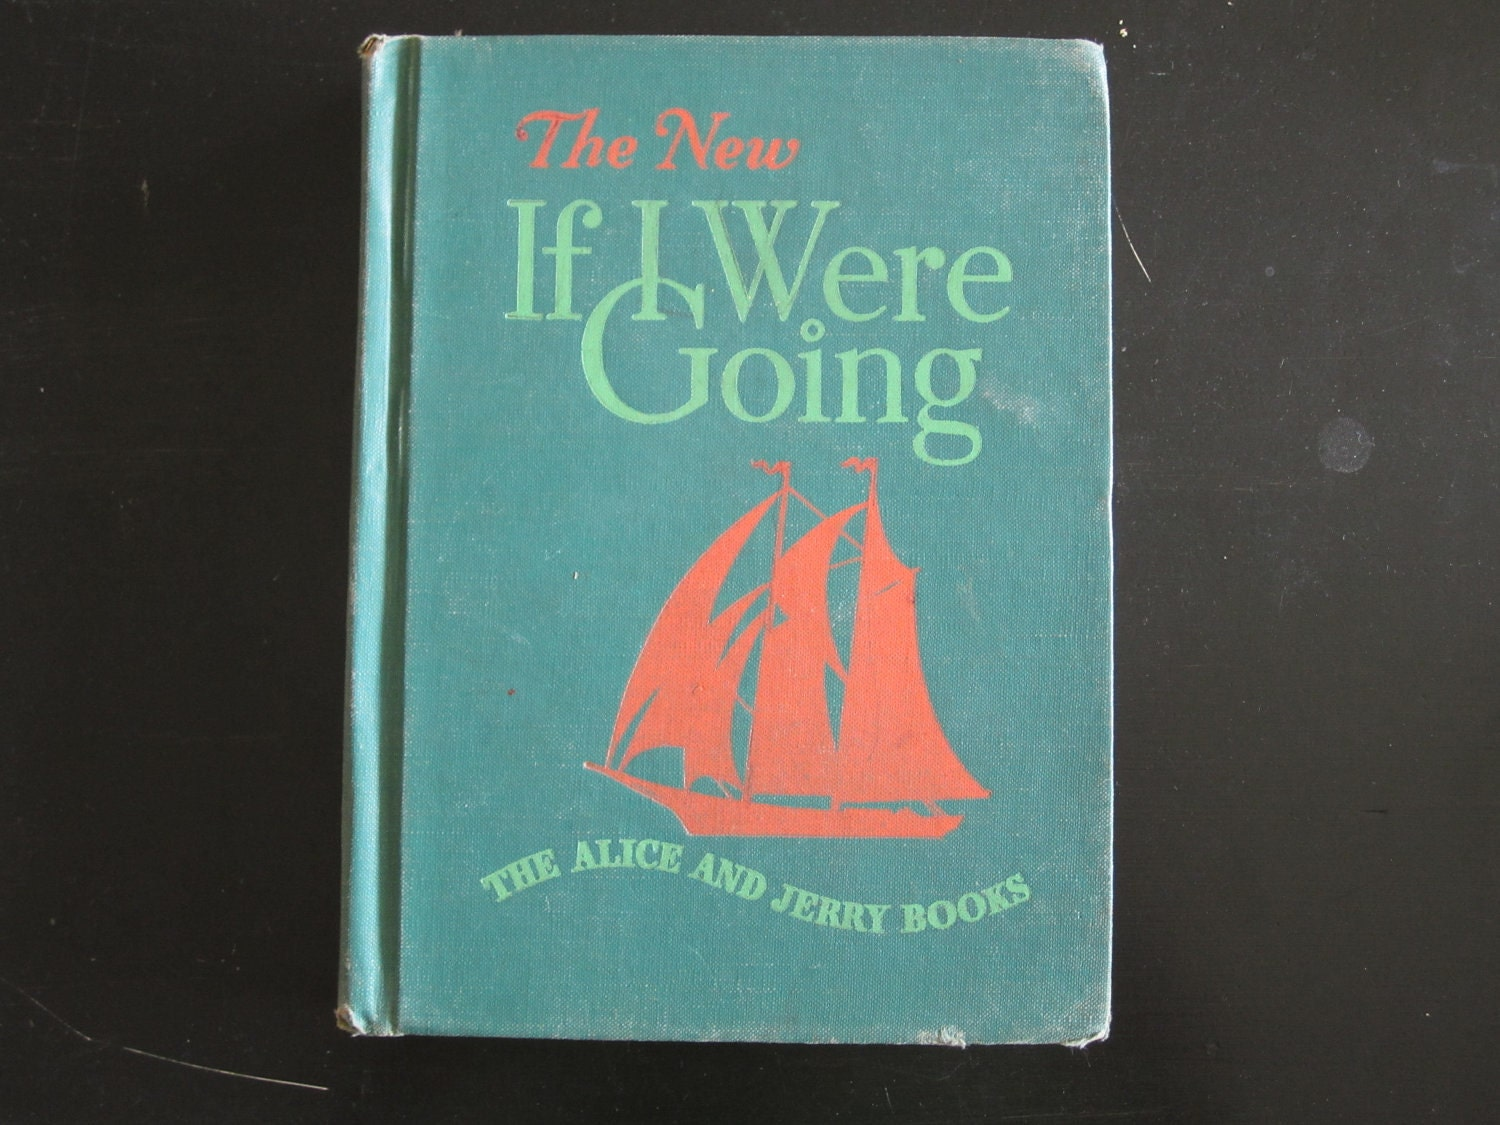 Vintage Childrens Book The New If I Were Going 1948 TEACHERS EDITION The Alice and Jerry Books Basic Reader